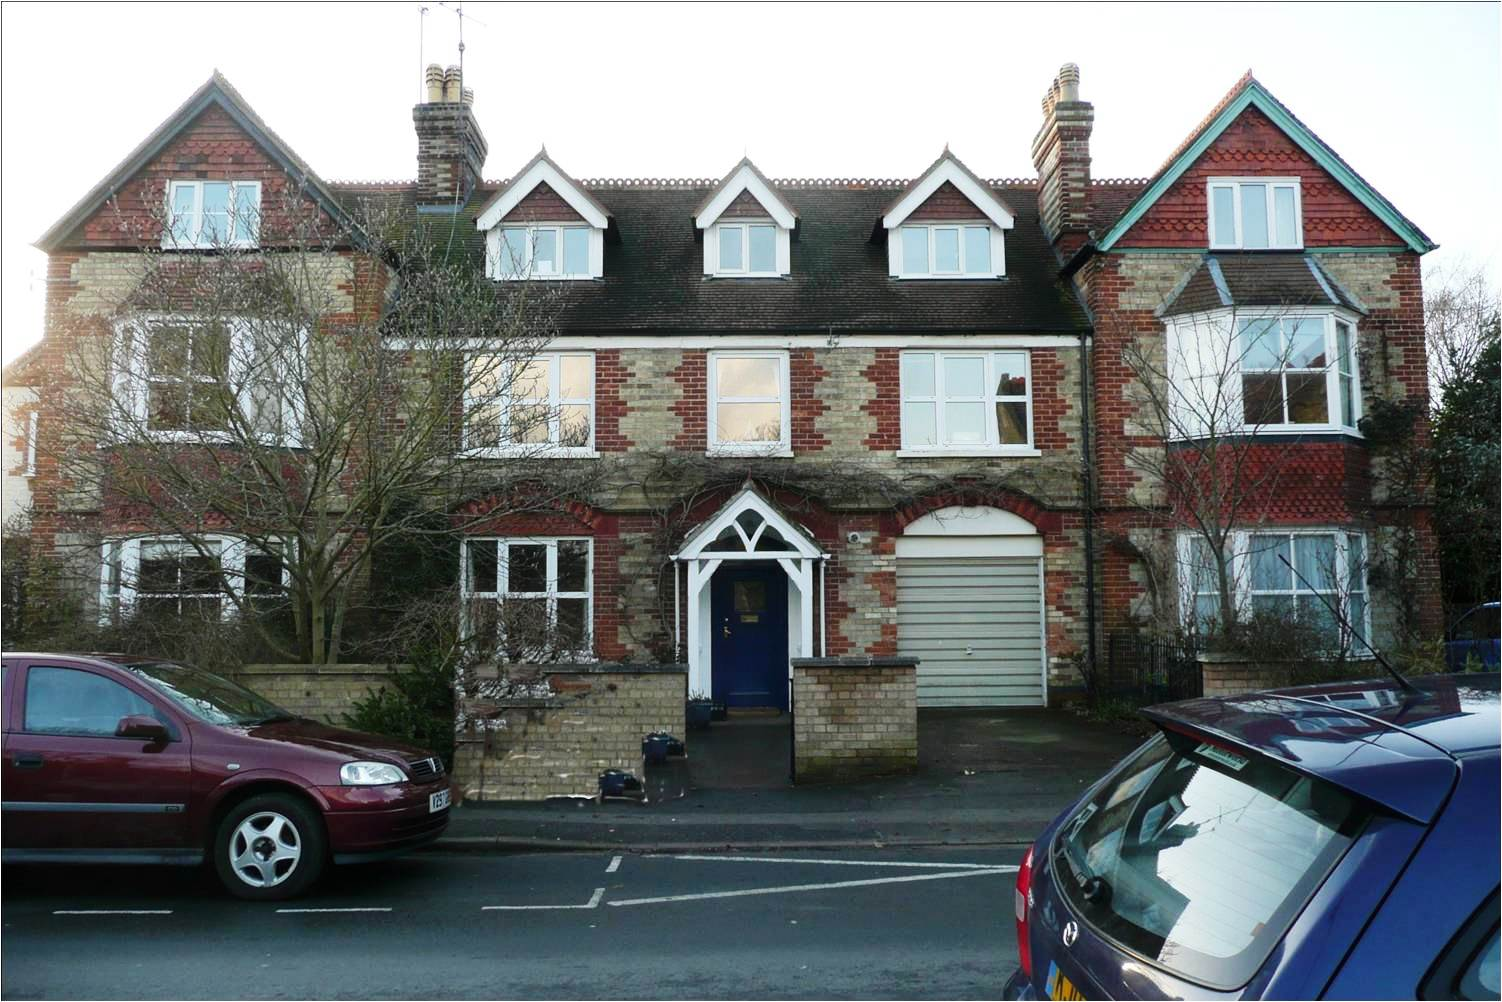 12 Conduit Road, where George and Ellen were living by 1922 and where they celebrated their golden wedding anniversary.